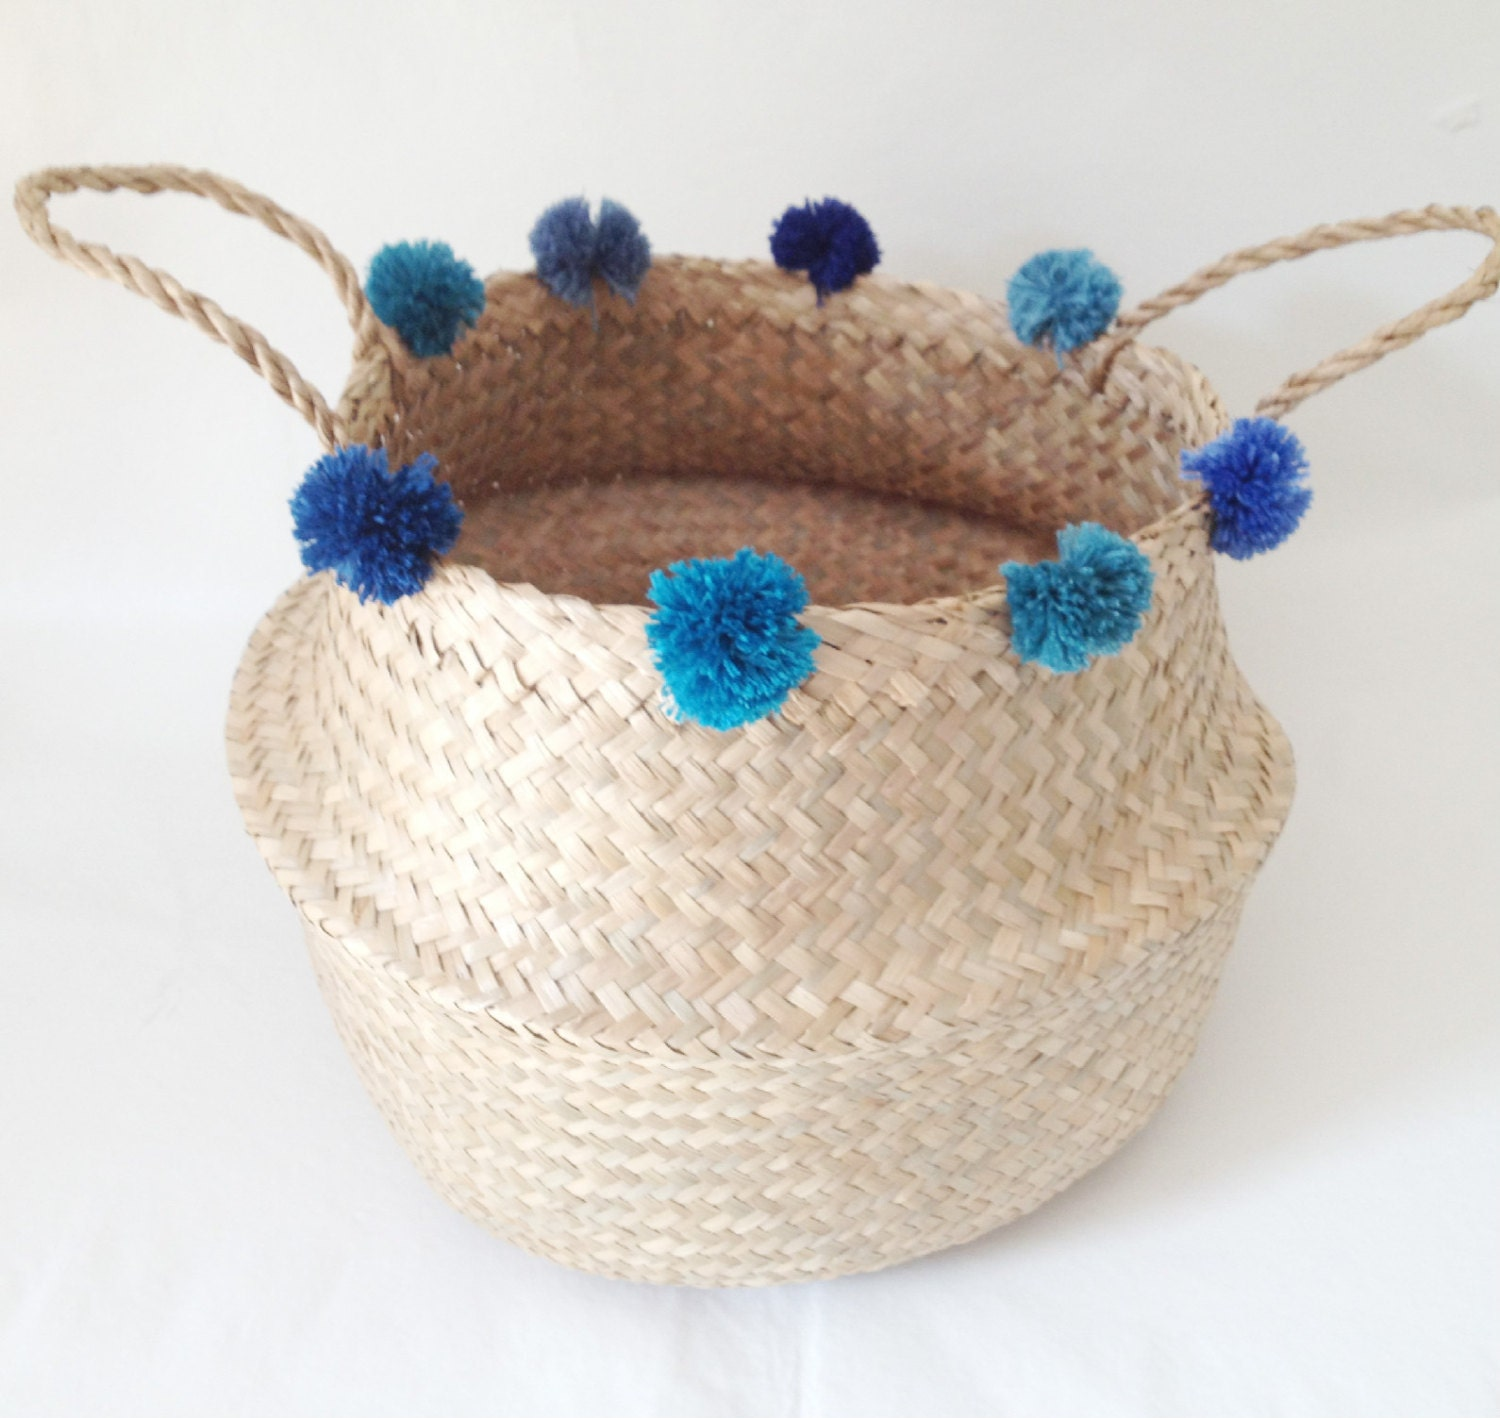 beautiful blue pom pom seagrass belly basket panier boule. Black Bedroom Furniture Sets. Home Design Ideas